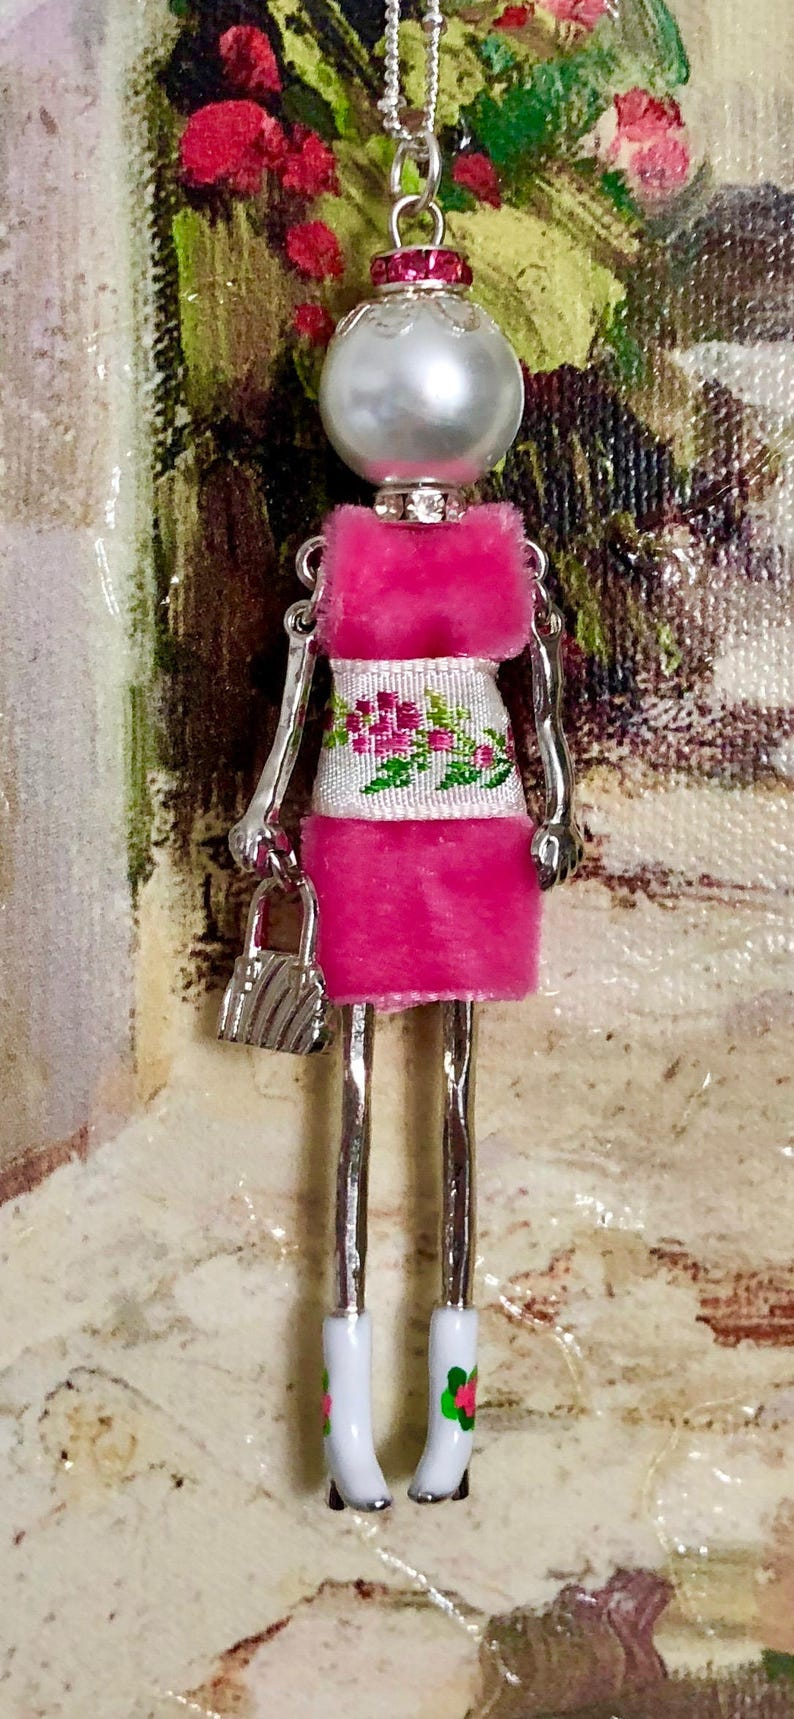 Ellies/' Belle: Sugar Valentine sweetie French doll pendant necklace Valentine/'s Day jewelry Italian doll necklace Valentine/'s Day bling